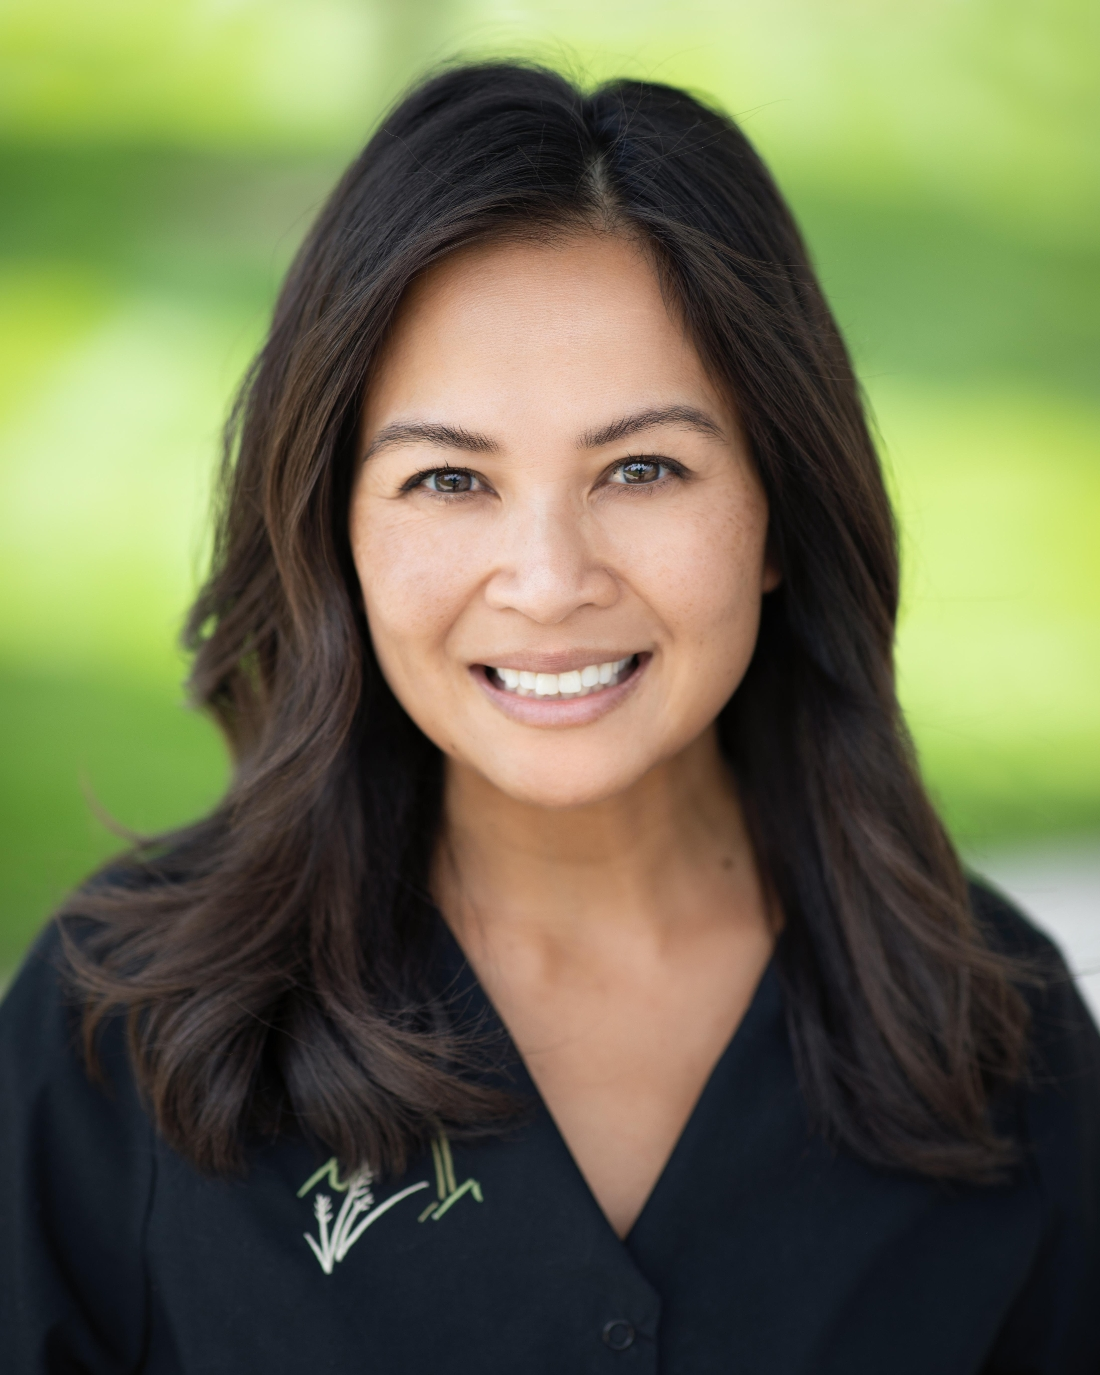 Pisey Ono | Registered Dental Hygienist | Fleischmann Family Dentistry | Broomfield, CO